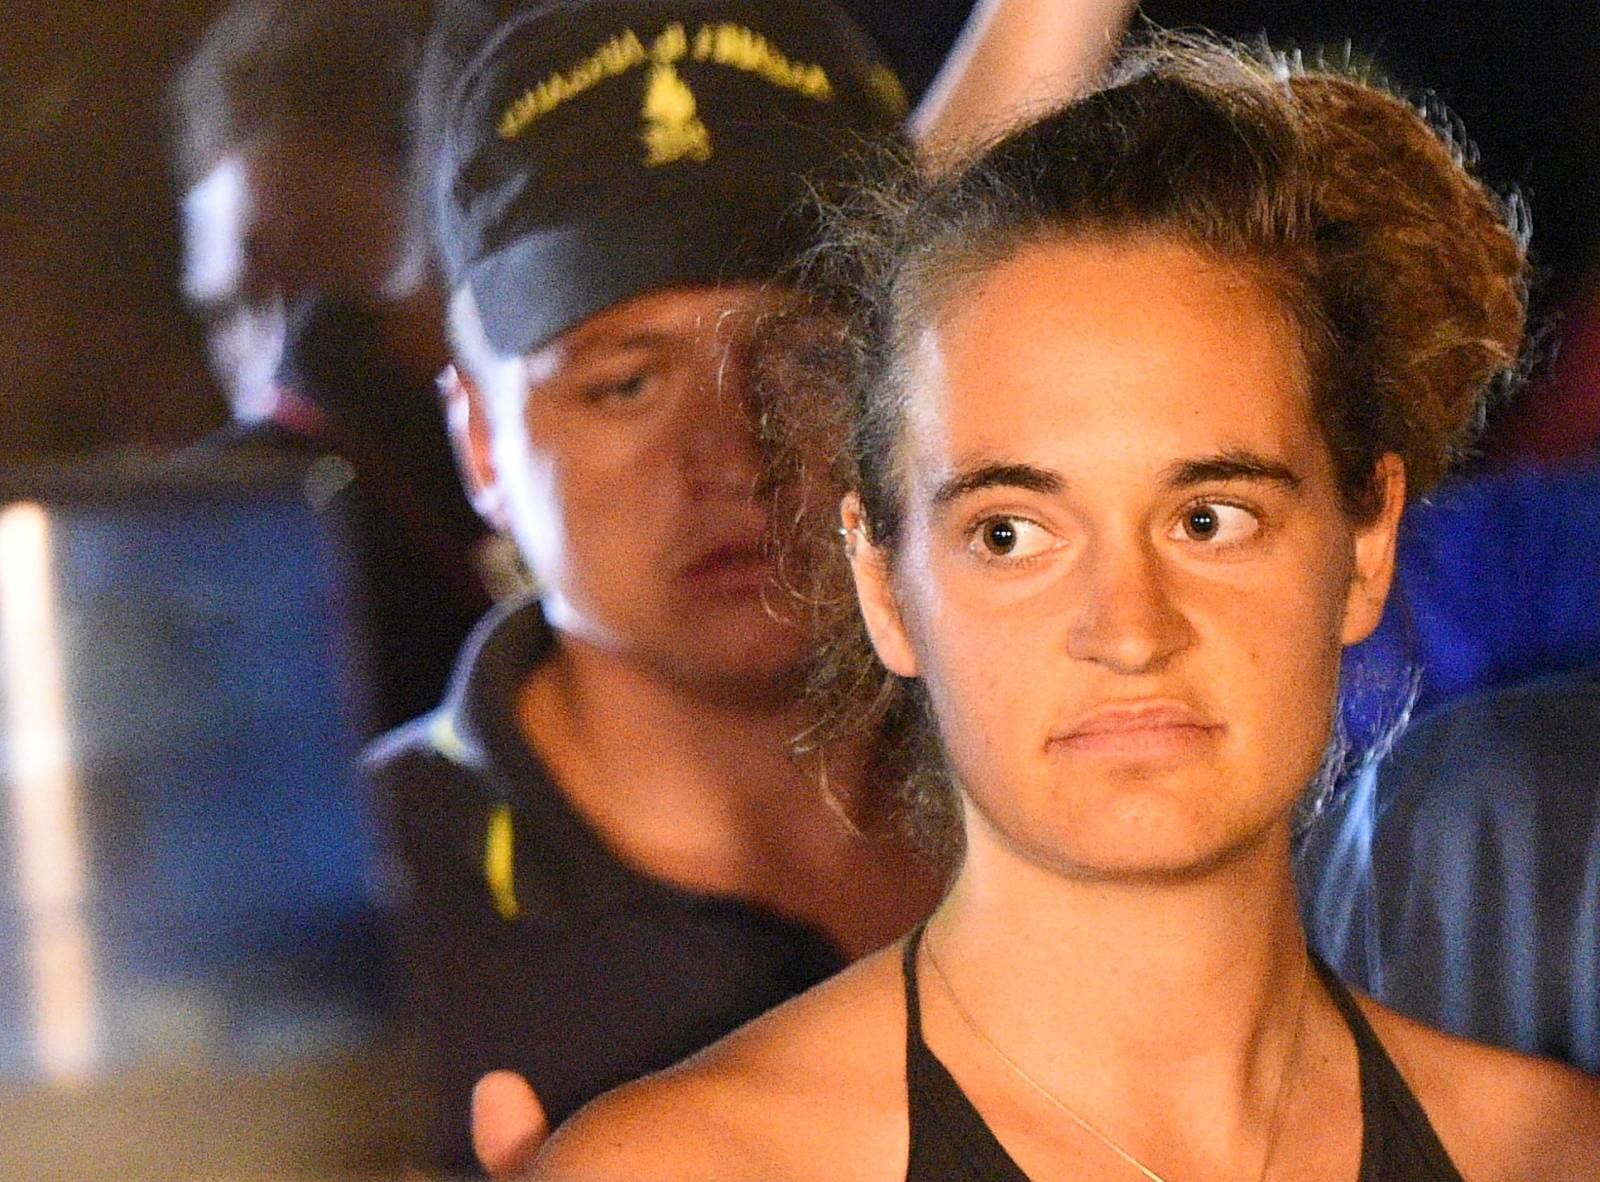 Sea-Watch 3 captain Carola Rackete is escorted off the ship by police and taken away for questioning, in Lampedusa